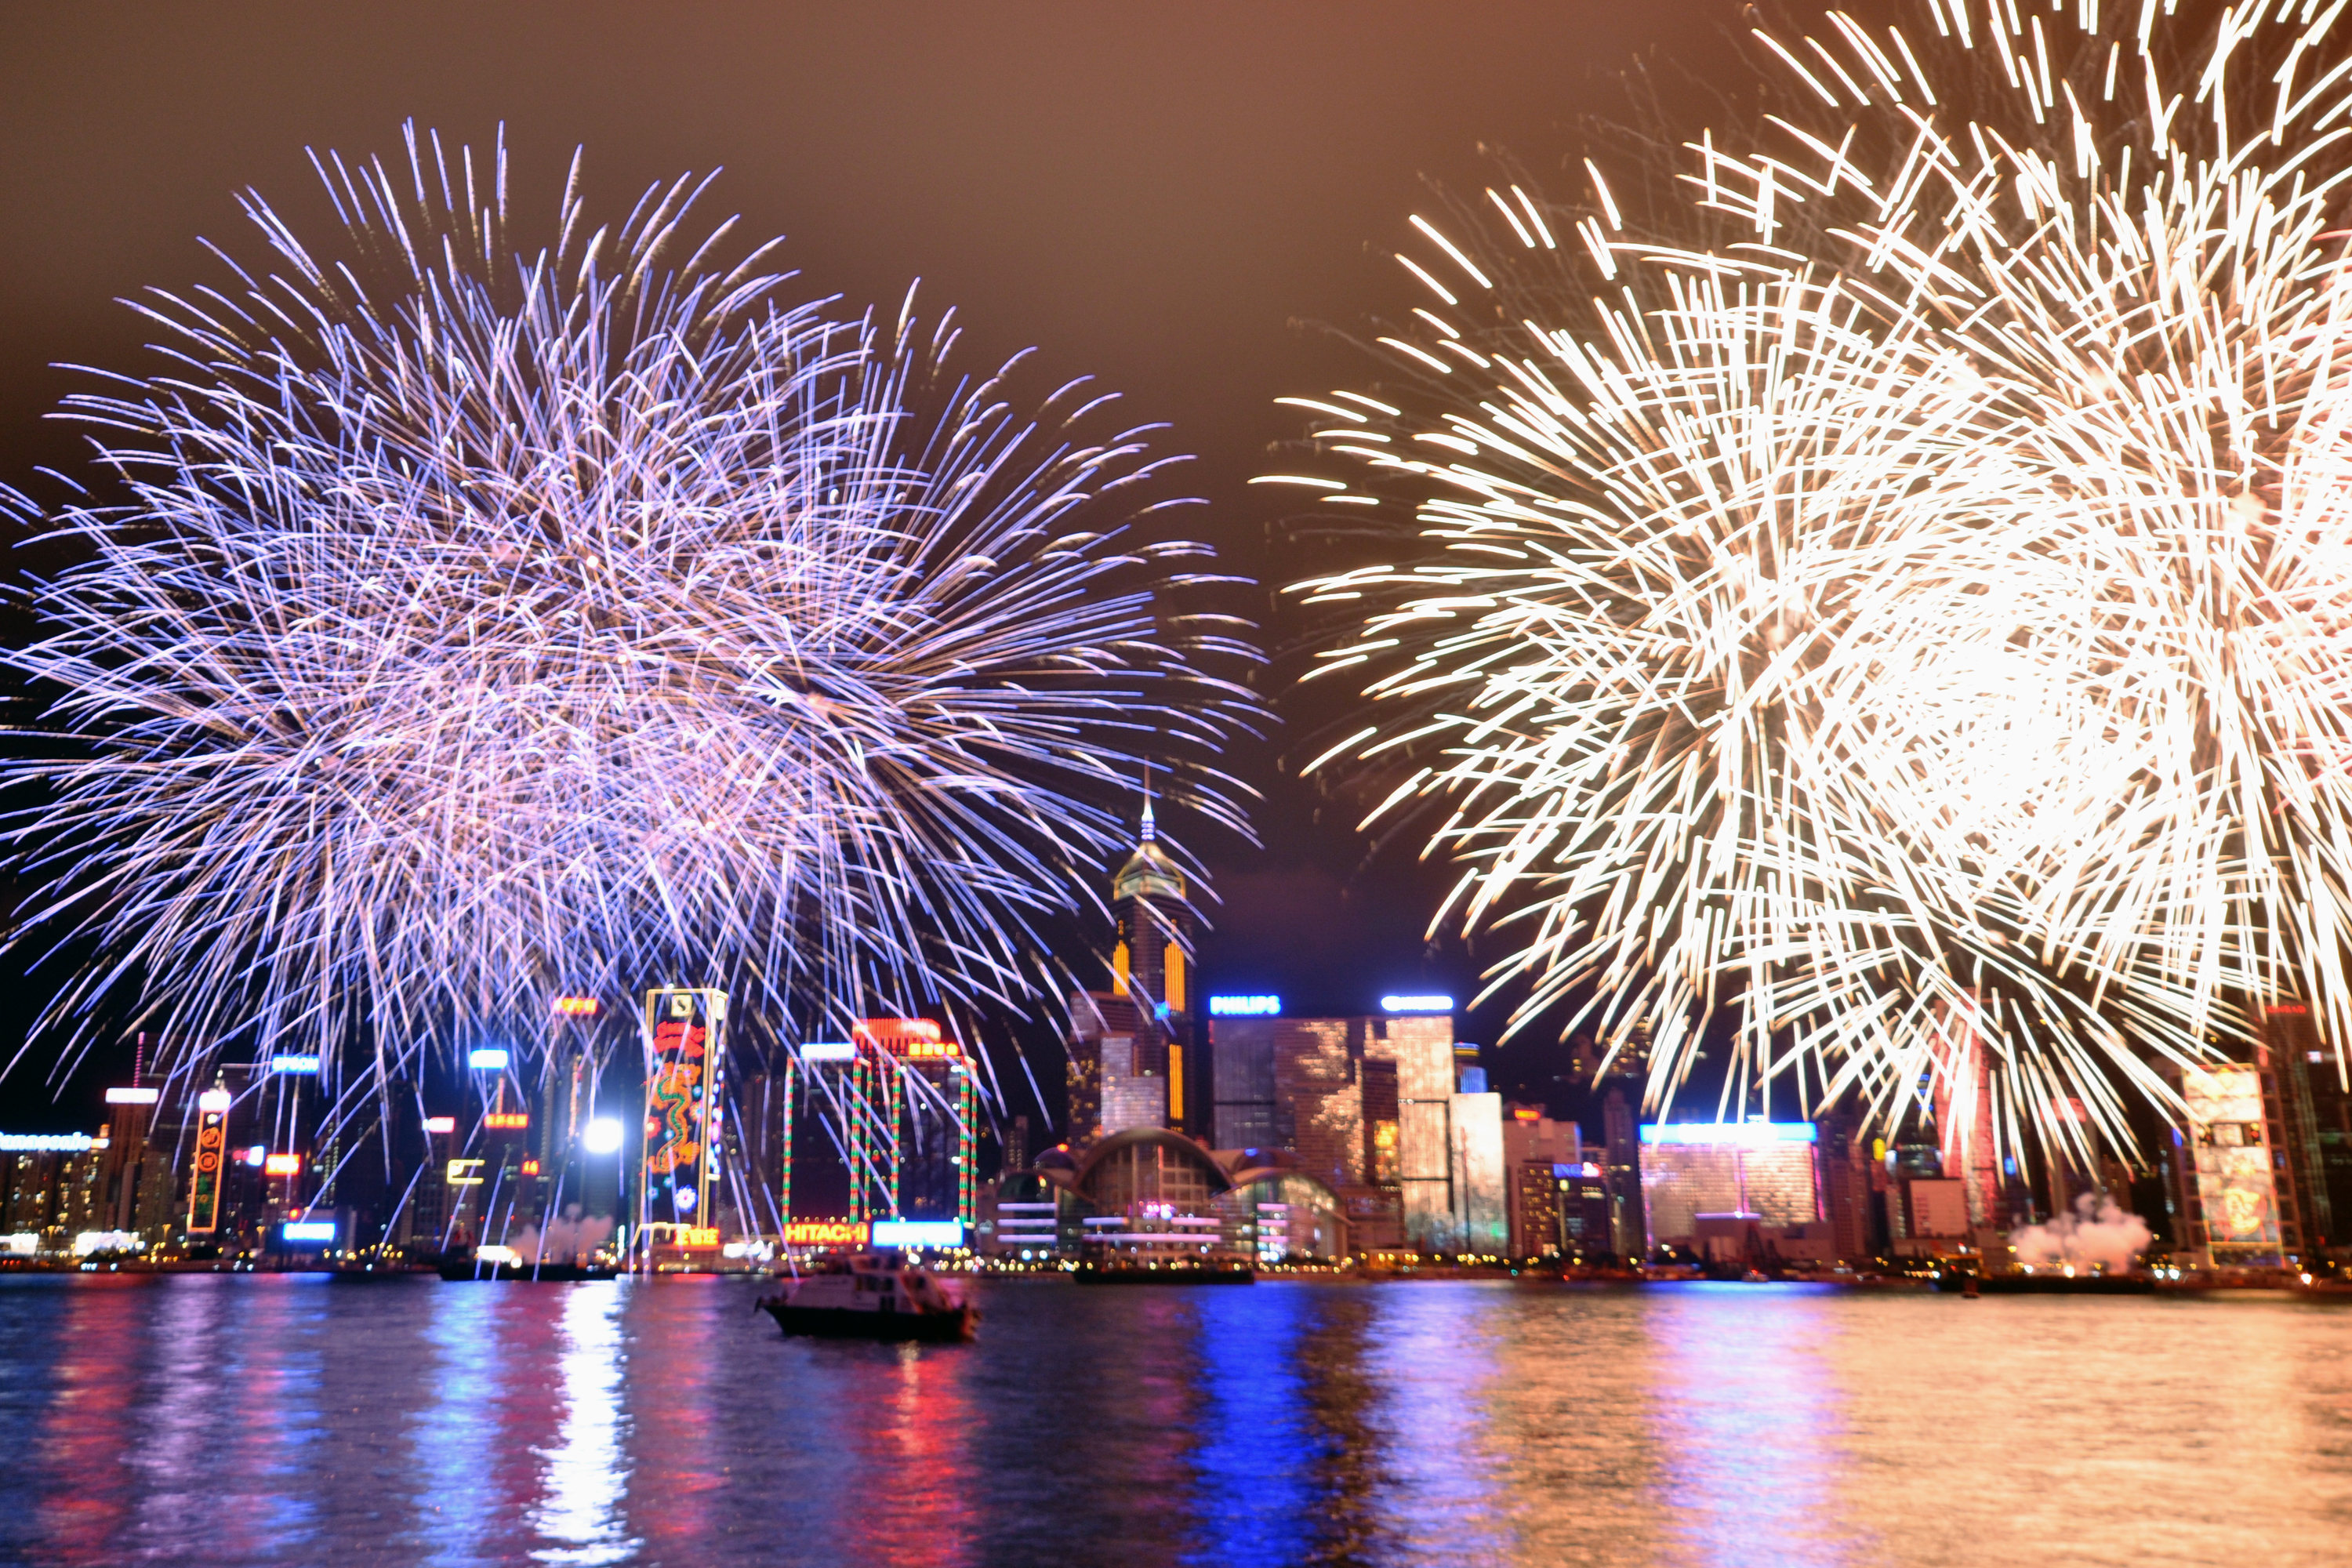 Hong Kong government cancels Chinese New Year fireworks